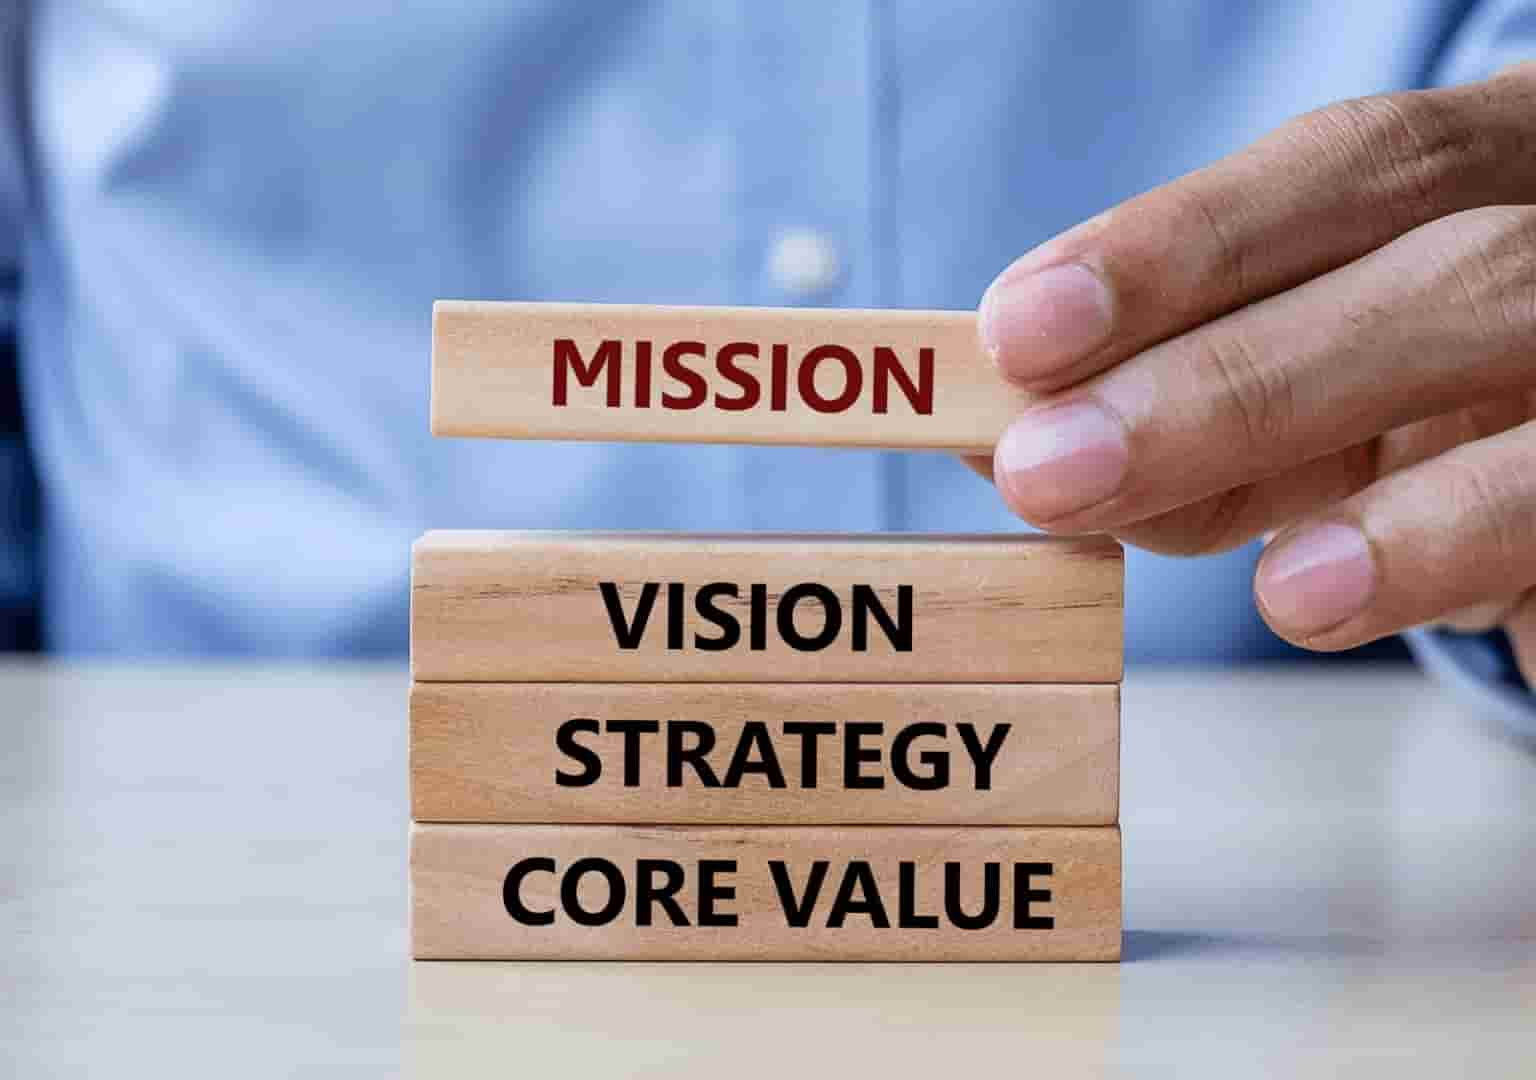 Mission-Vision-Strategy-Core-Value-gps-tracking